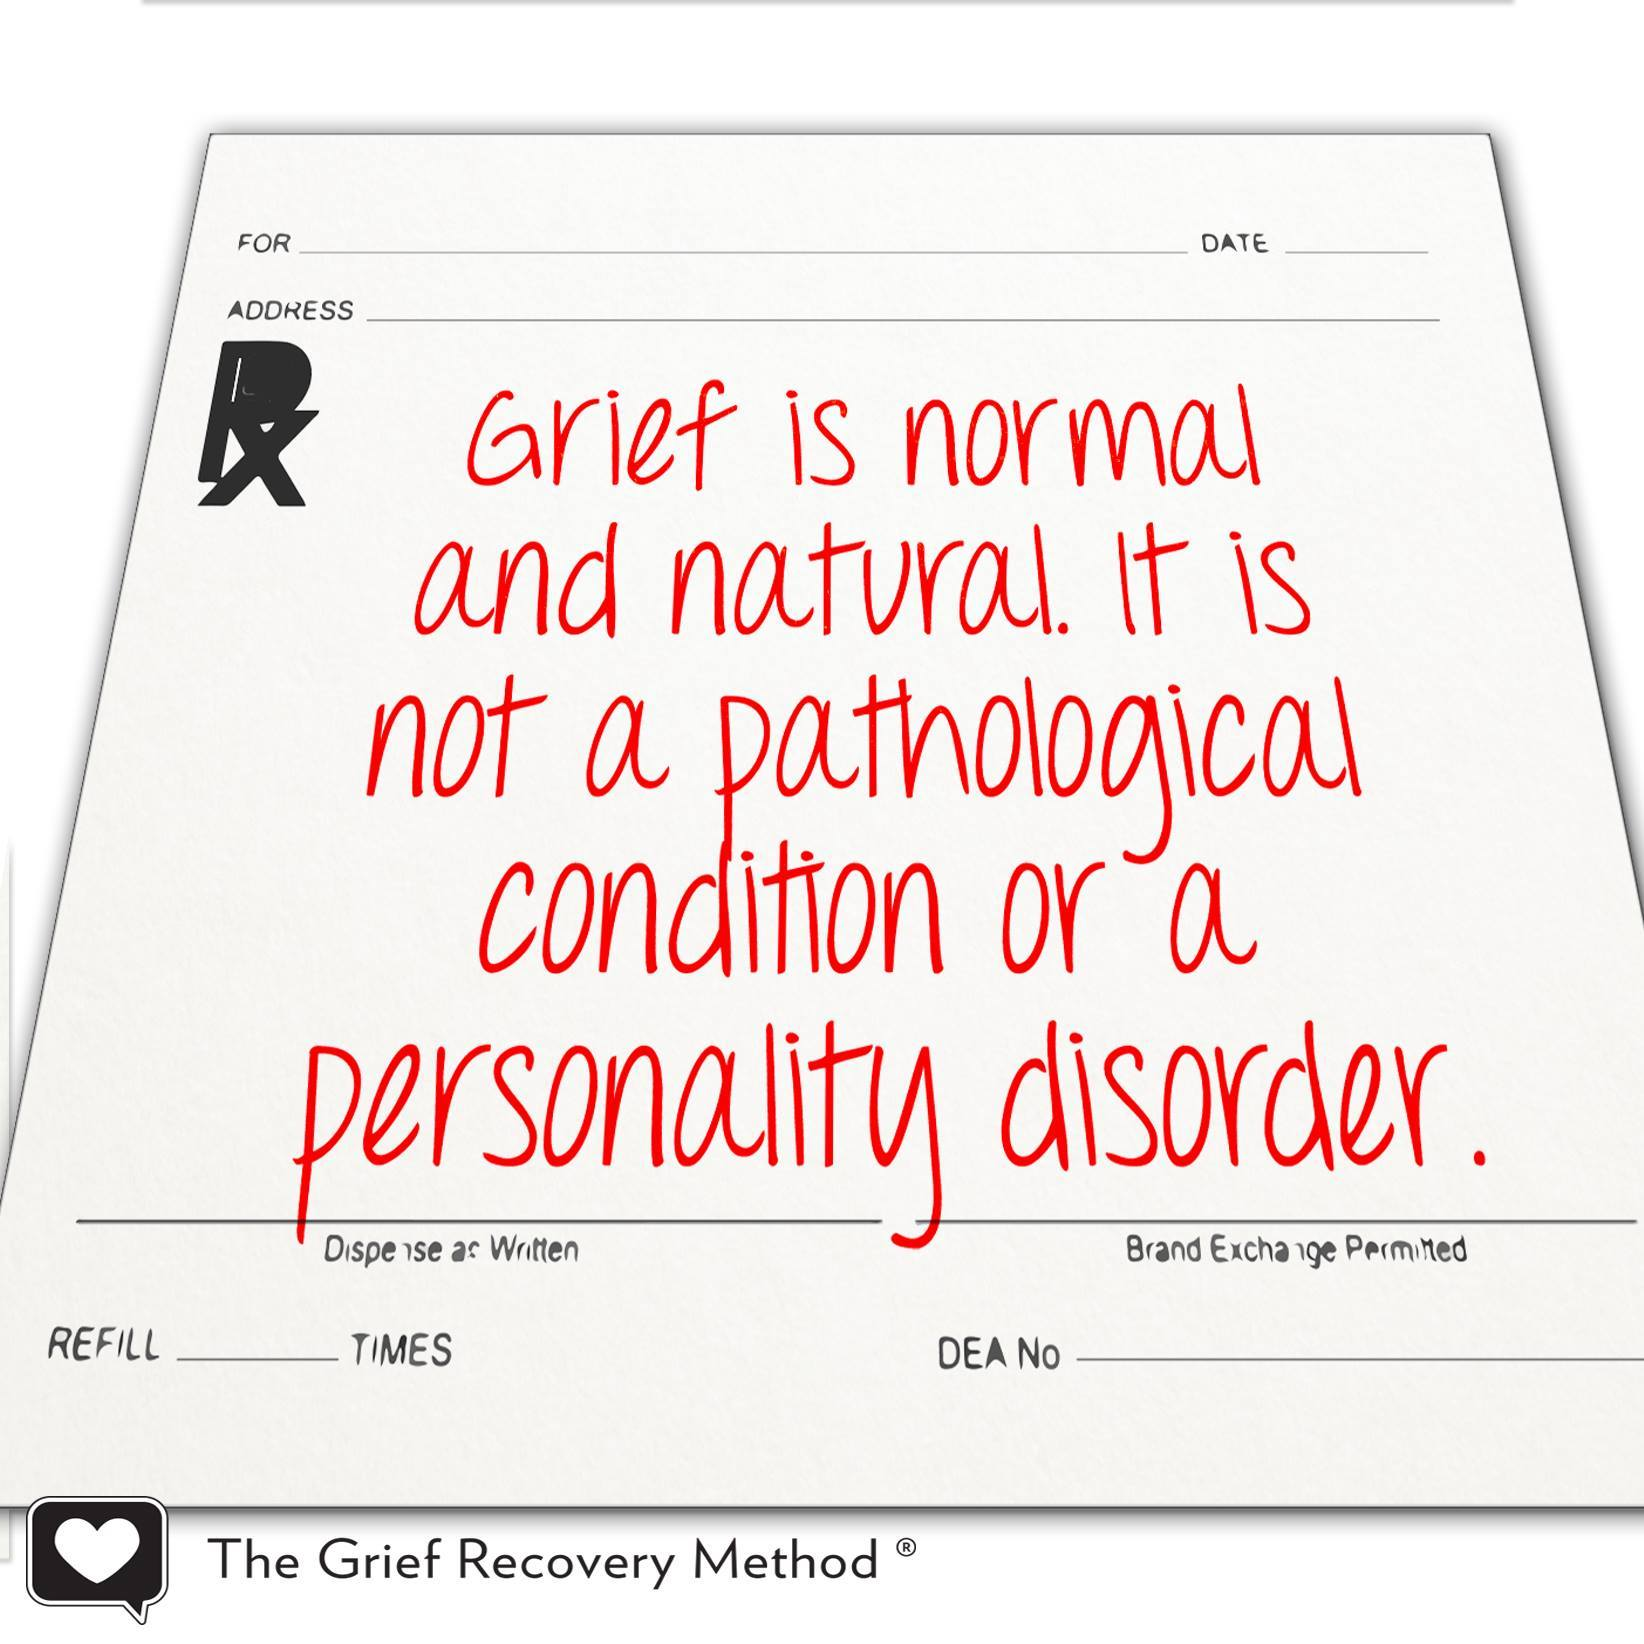 grief is normal and natural not pathological condition or disorder.jpg